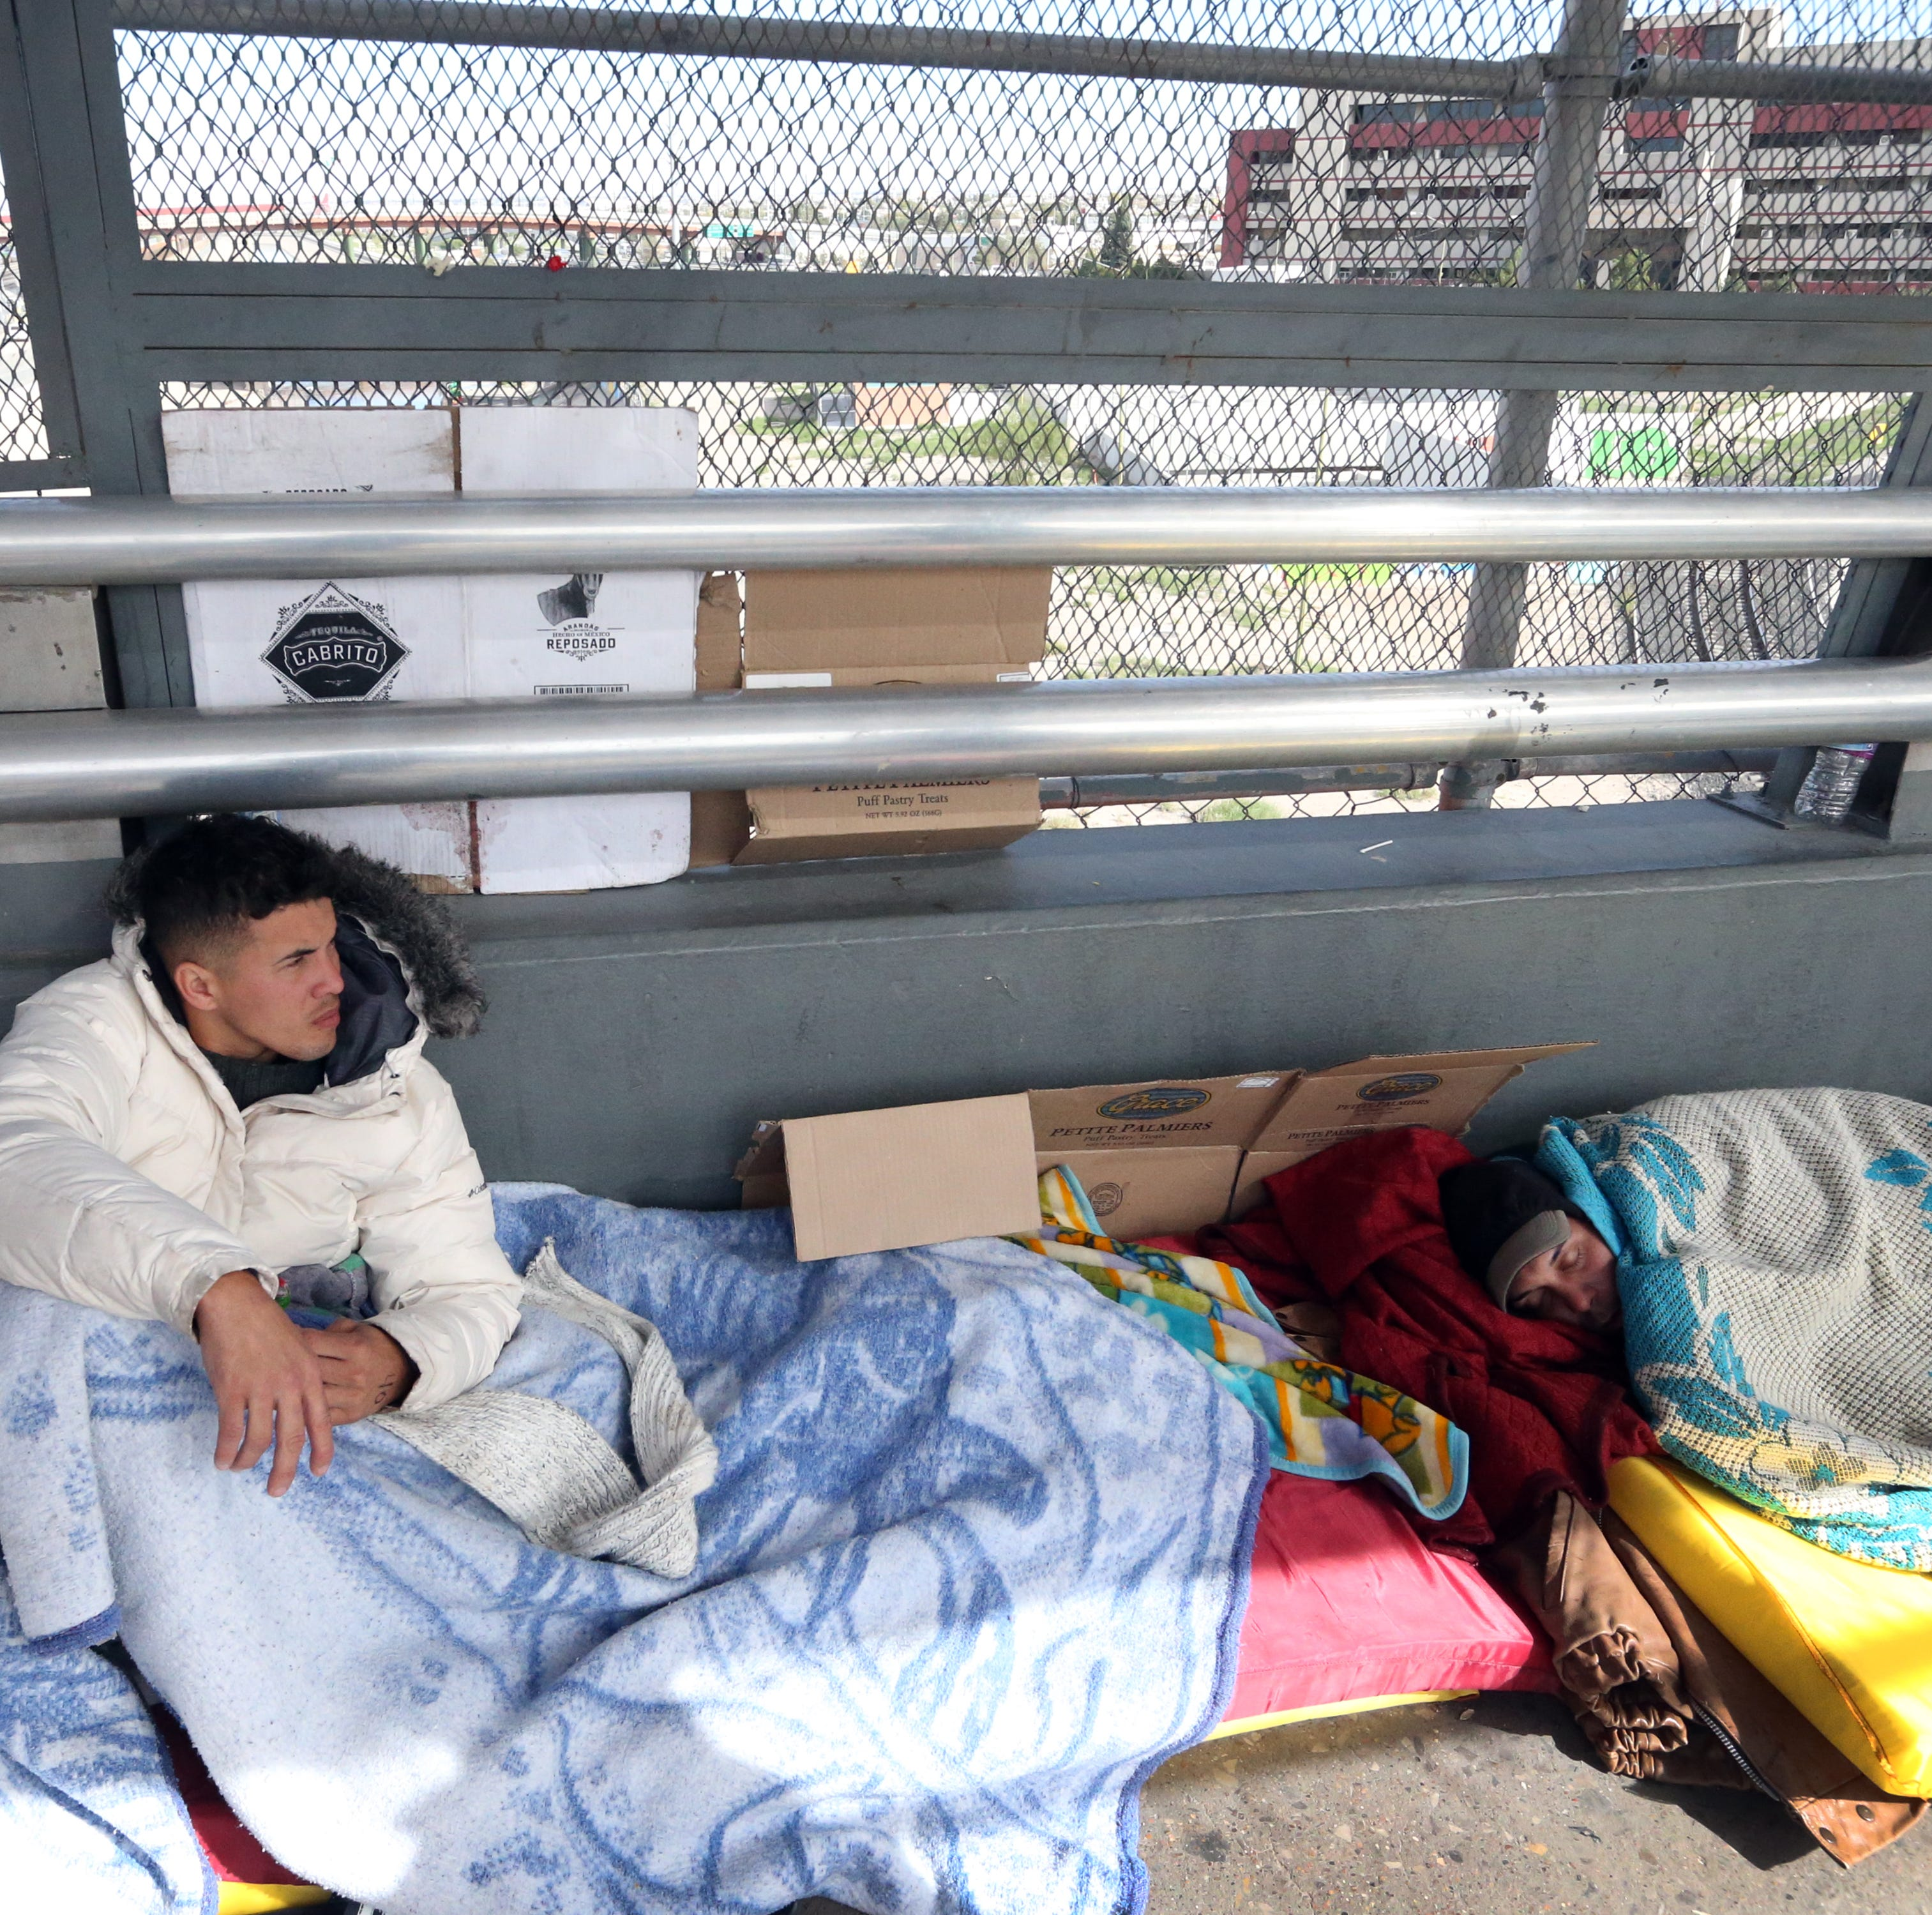 Migrants sleeping on Paso Del Norte Bridge at El Paso border moved to Juárez shelter